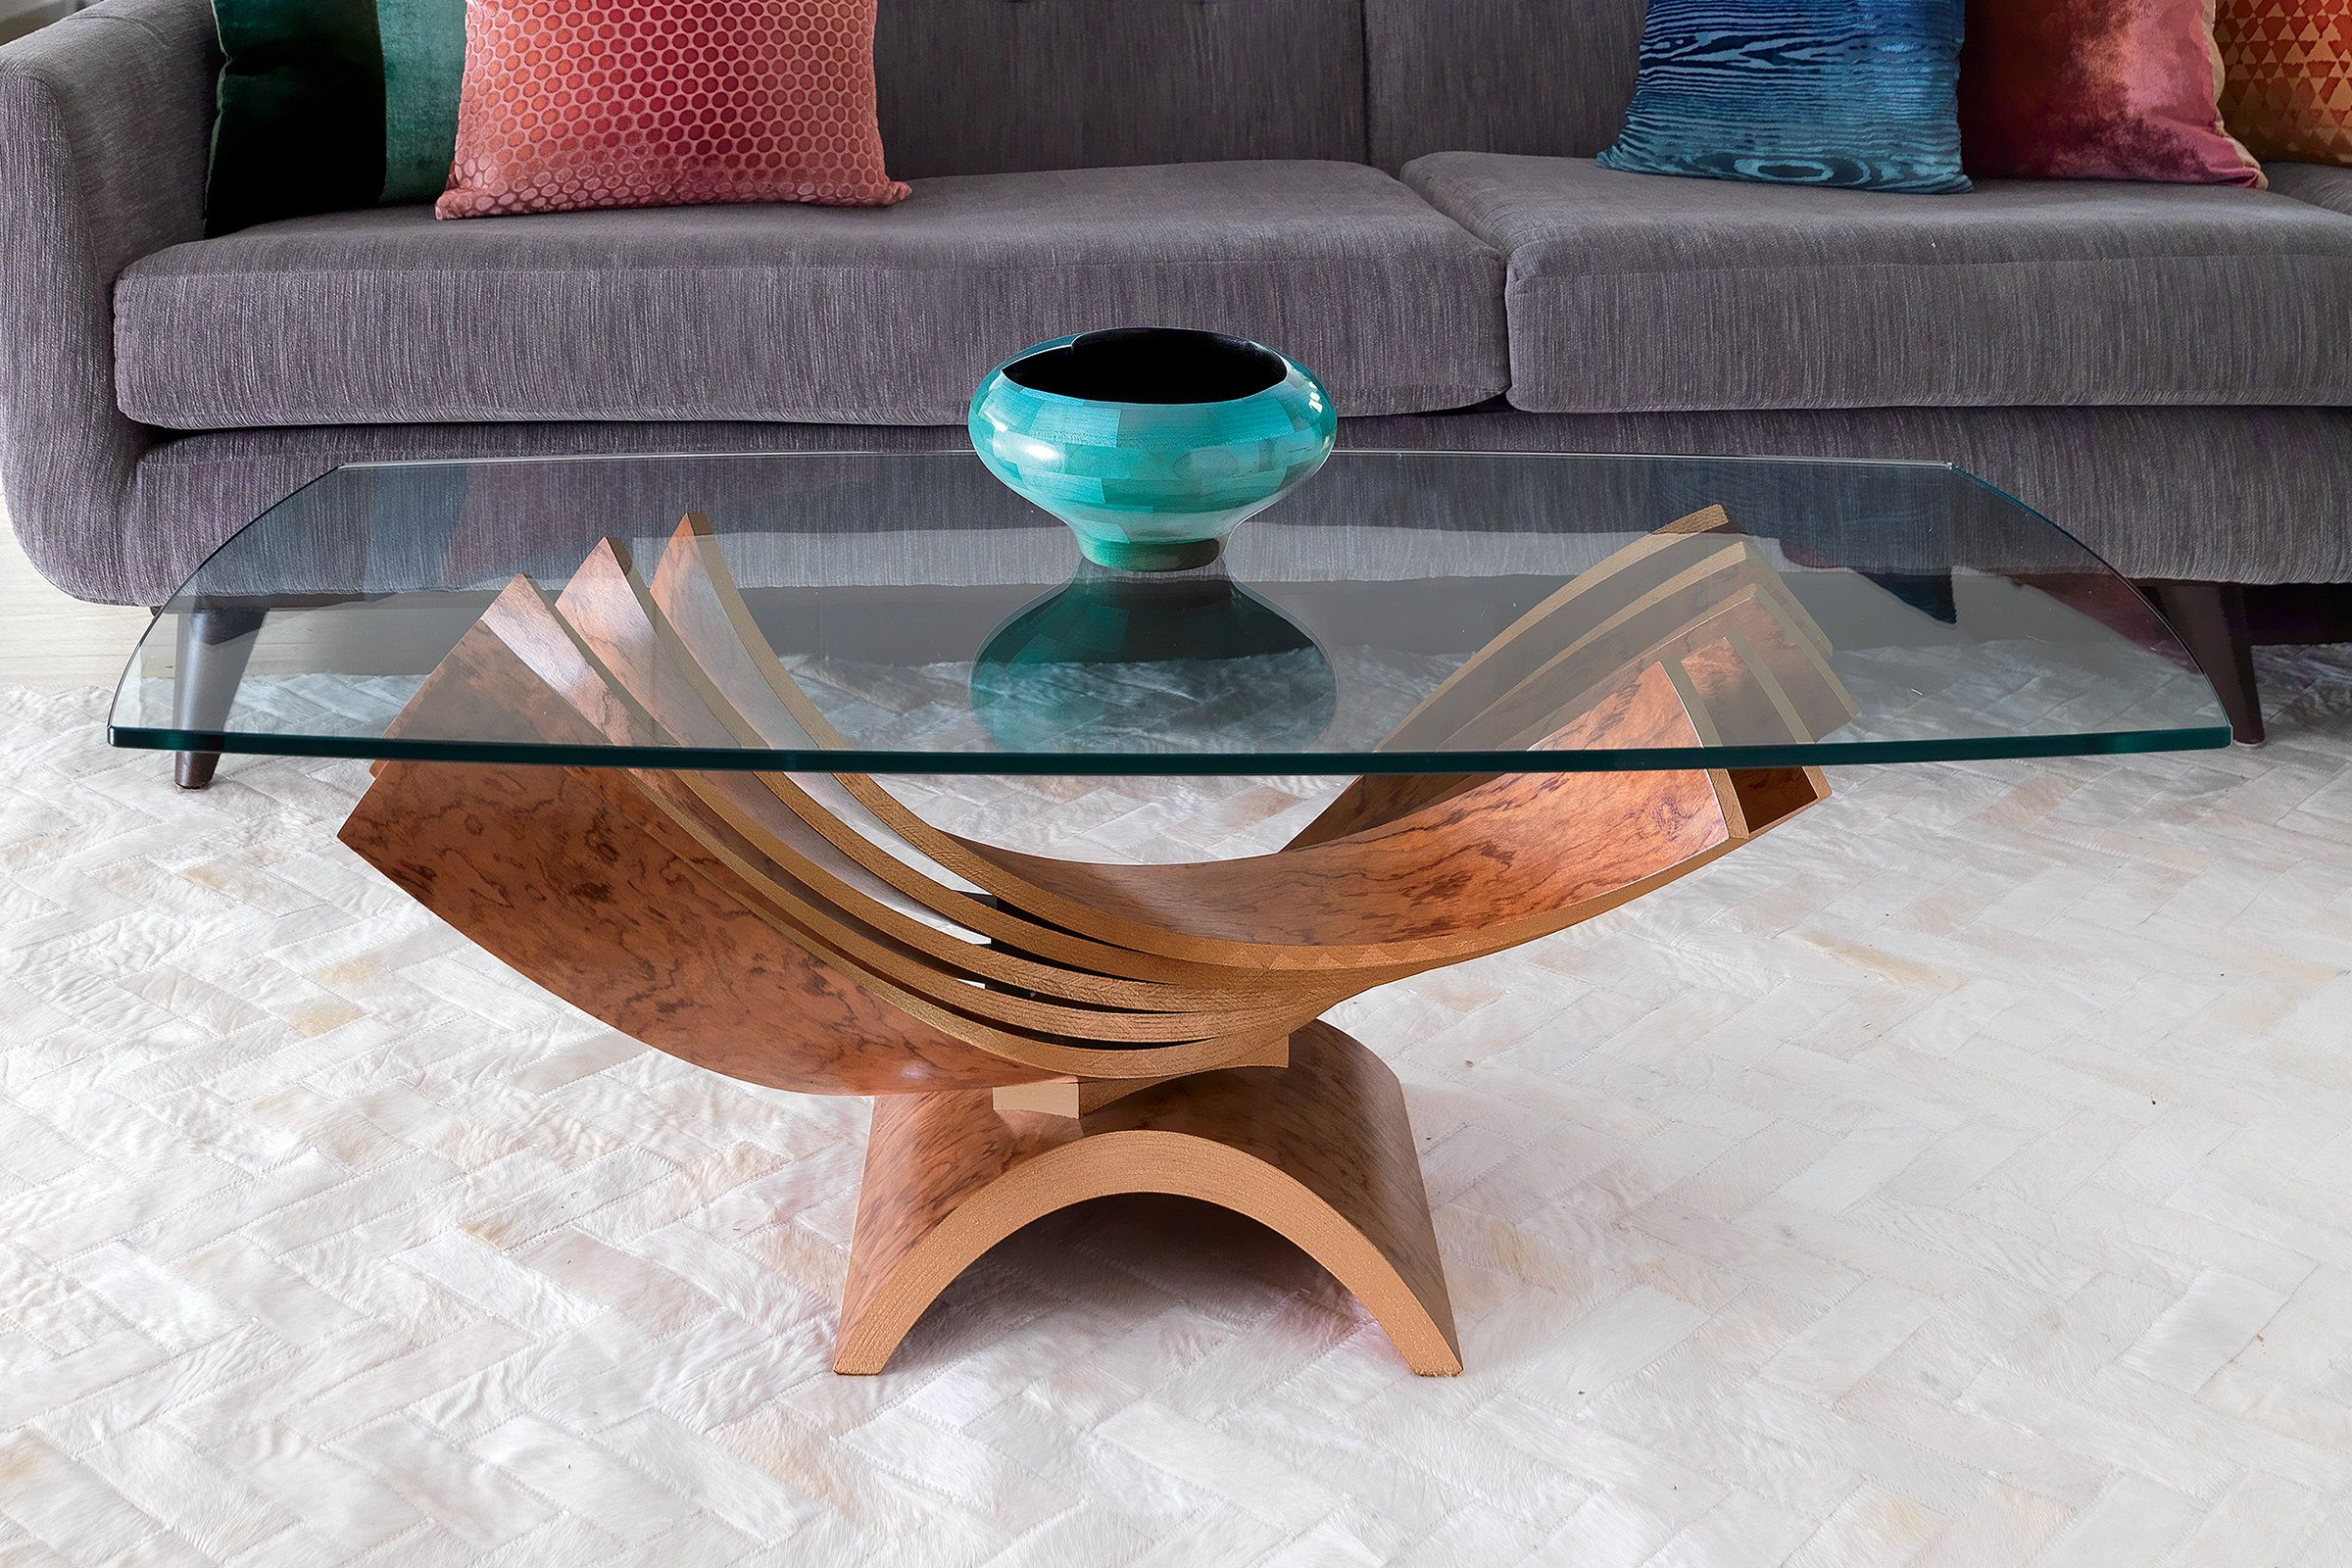 Spiral Cocktail Table By Blaise Gaston Five Elegant Wooden Curves